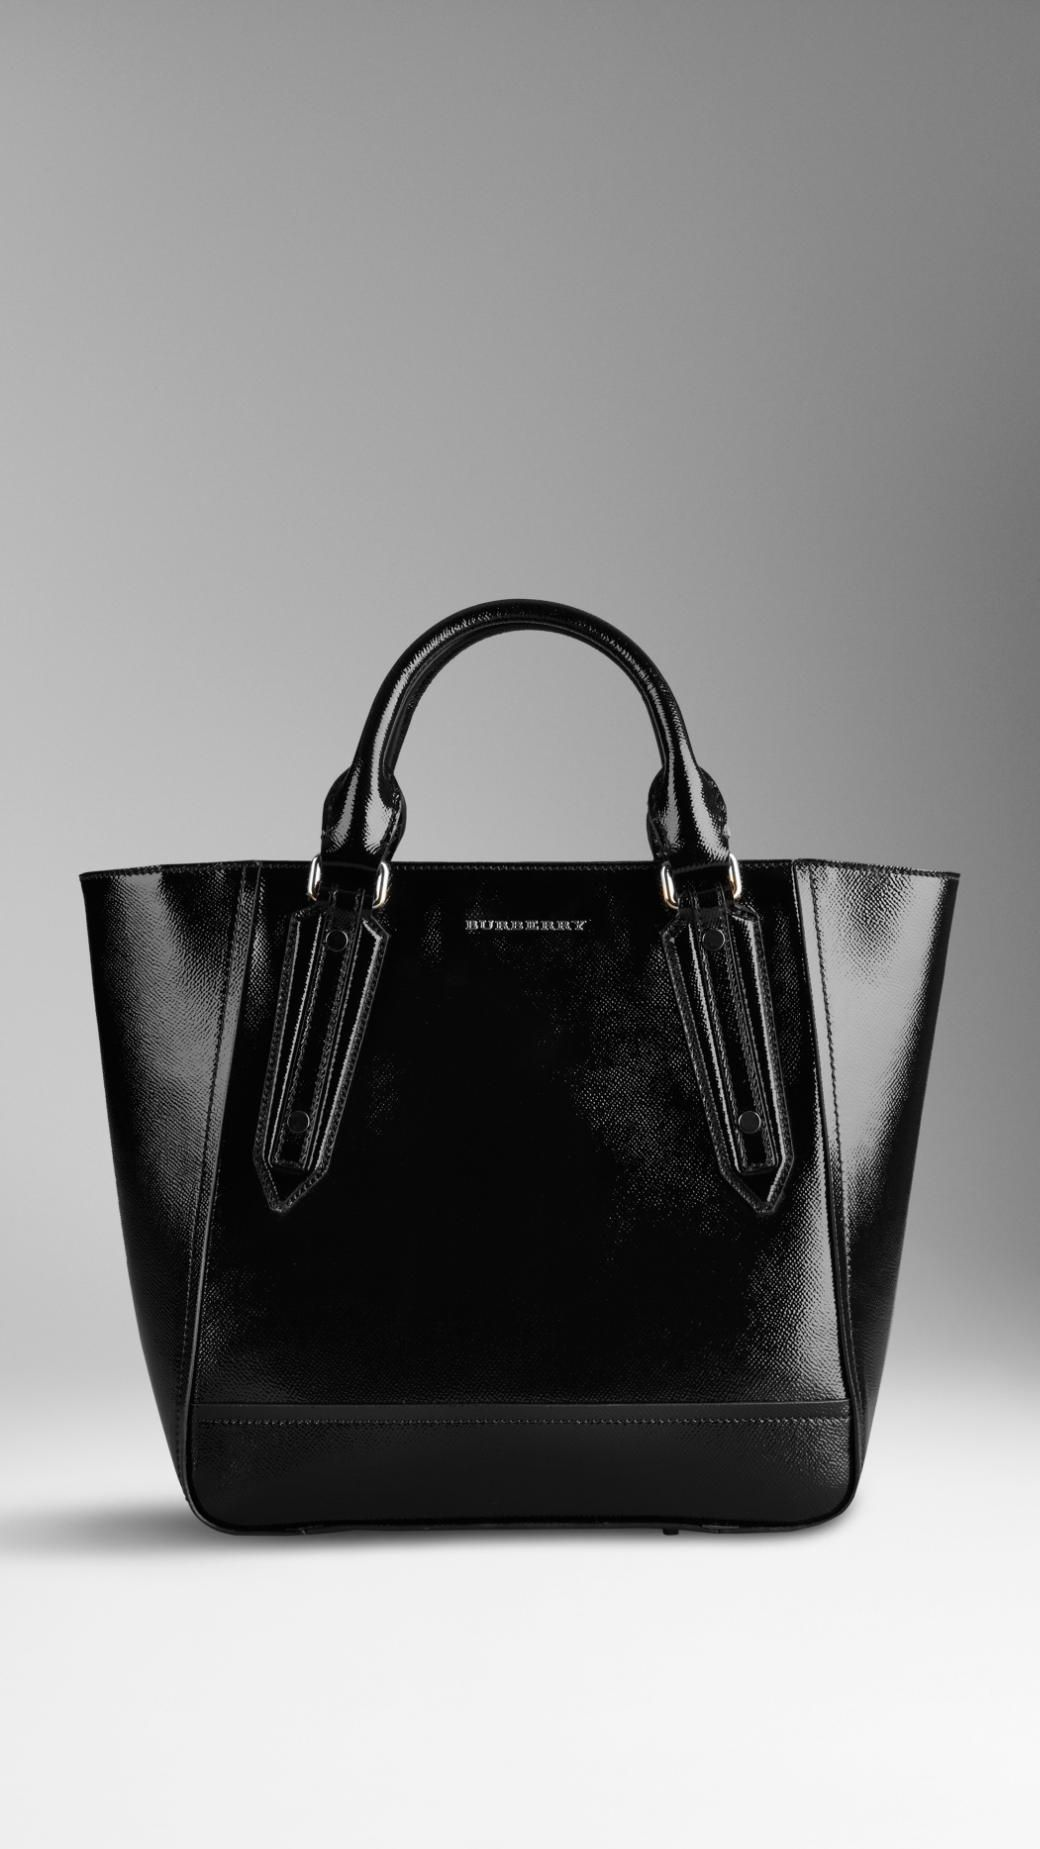 Burberry Large Patent London Leather Portrait Tote Bag